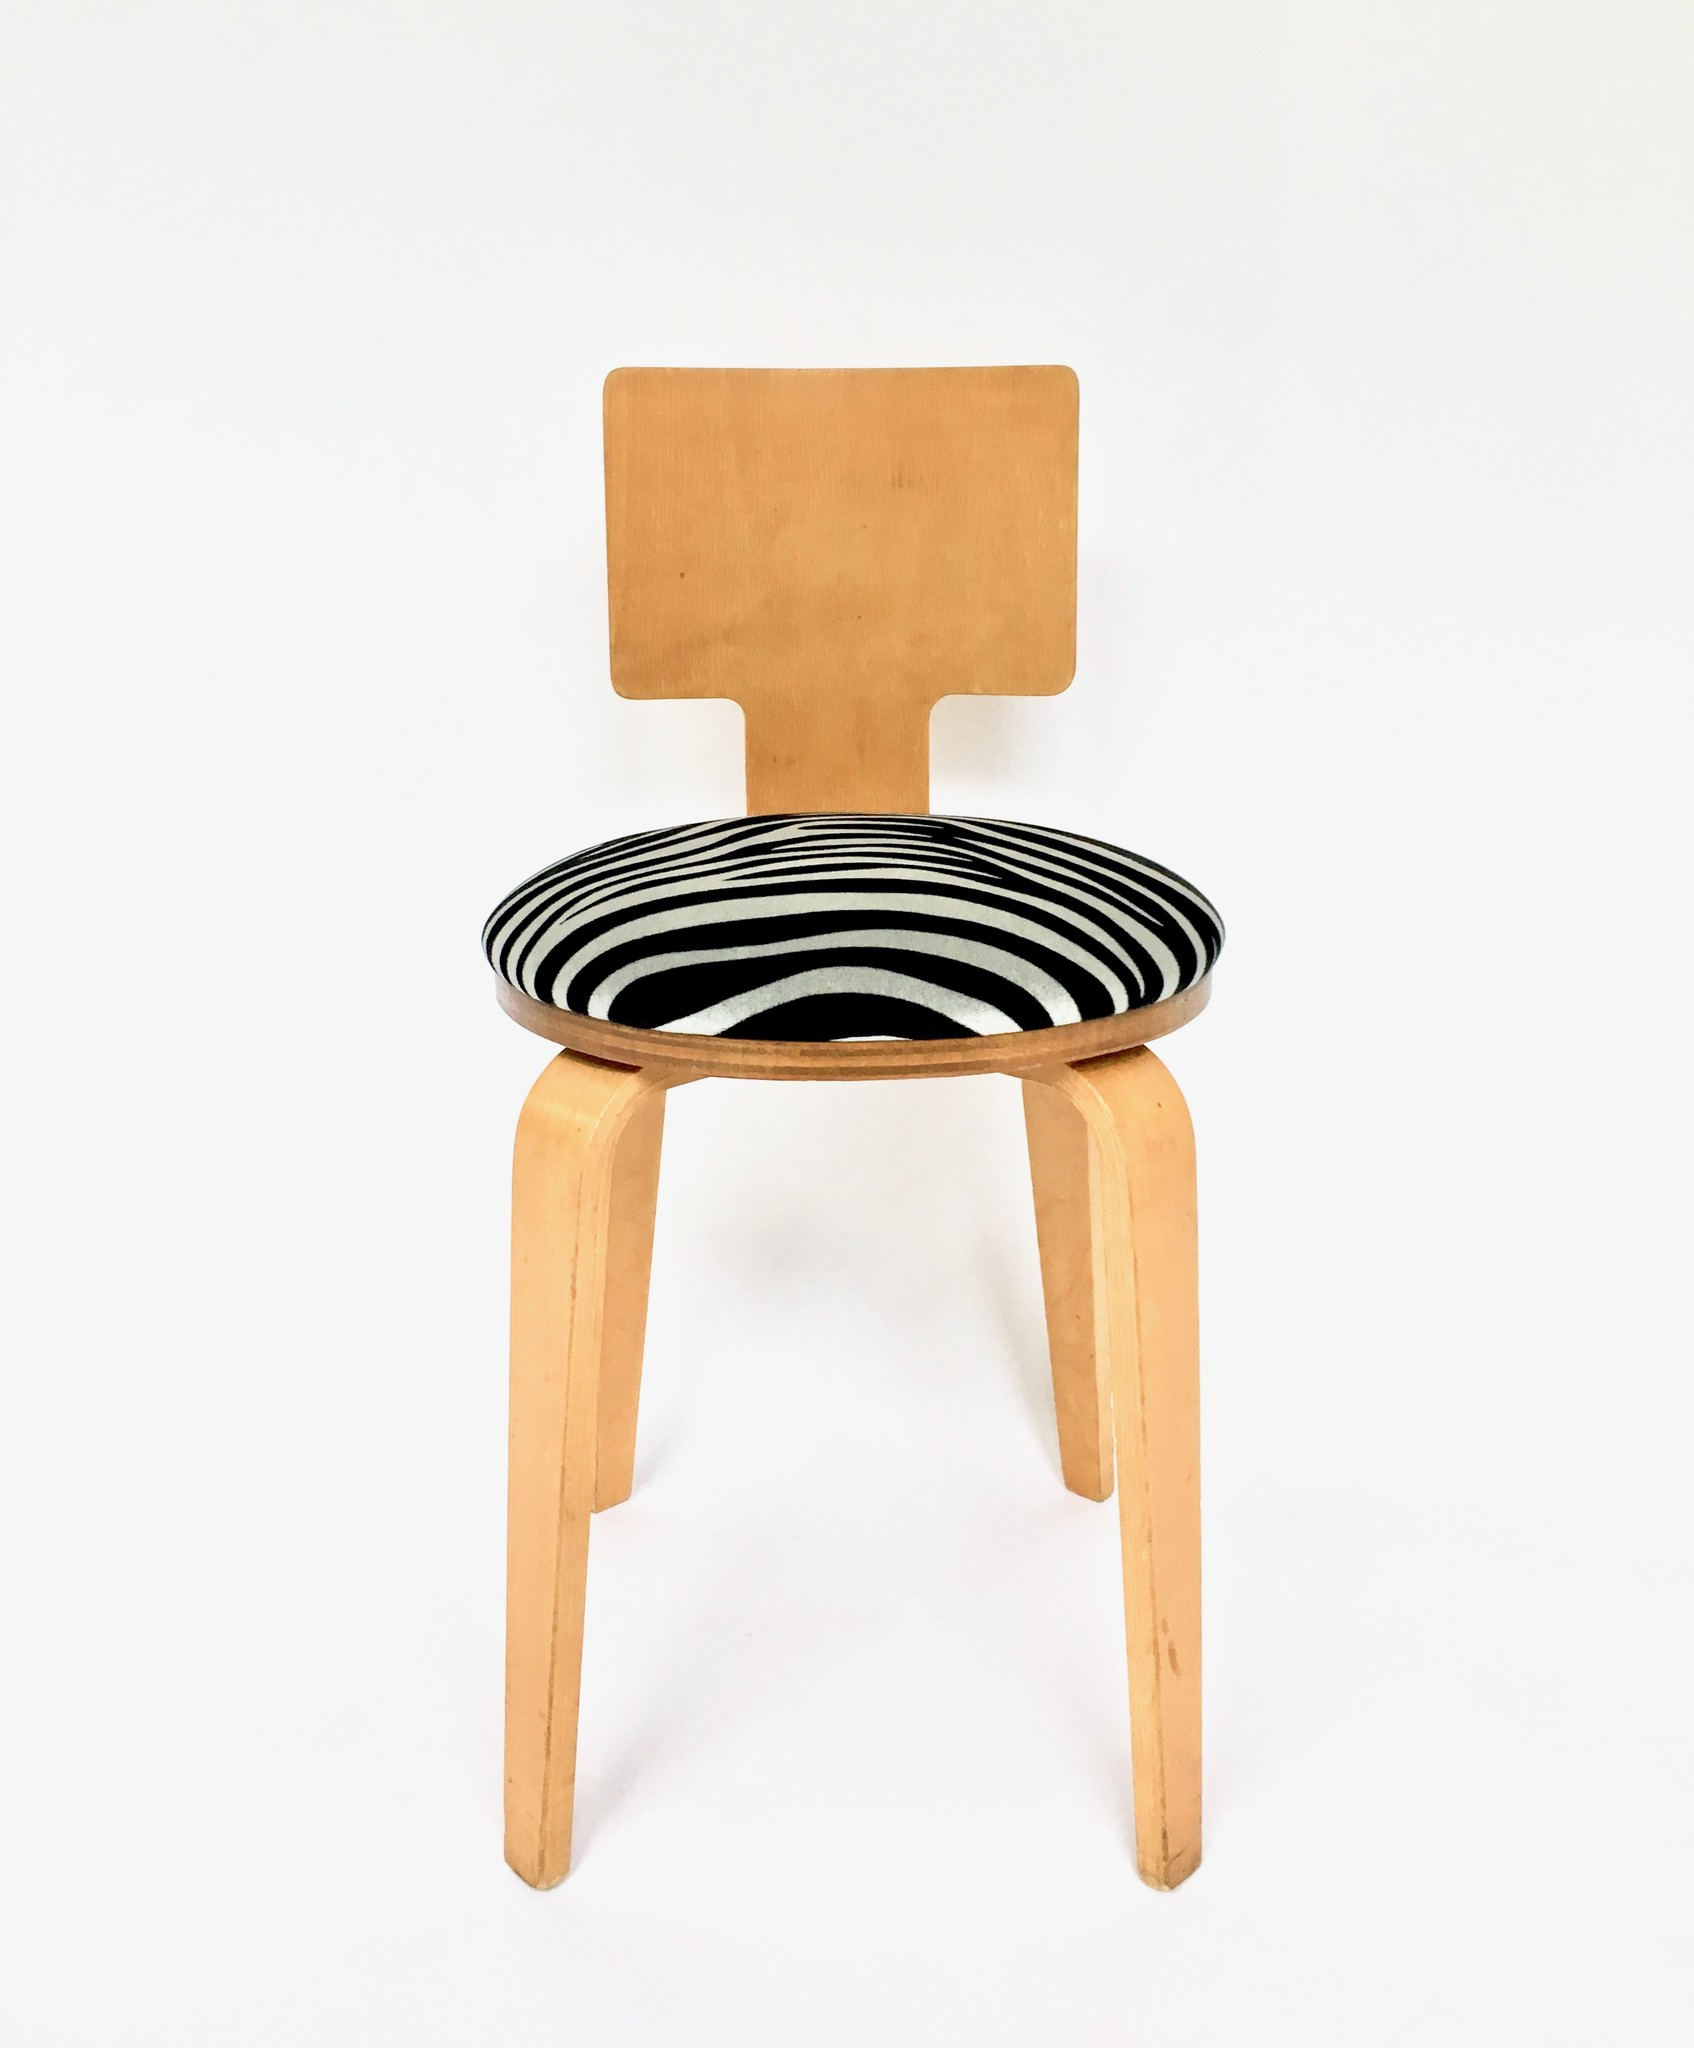 Cor Alons and J.C. Jansen chairs for Den Boer Gouda